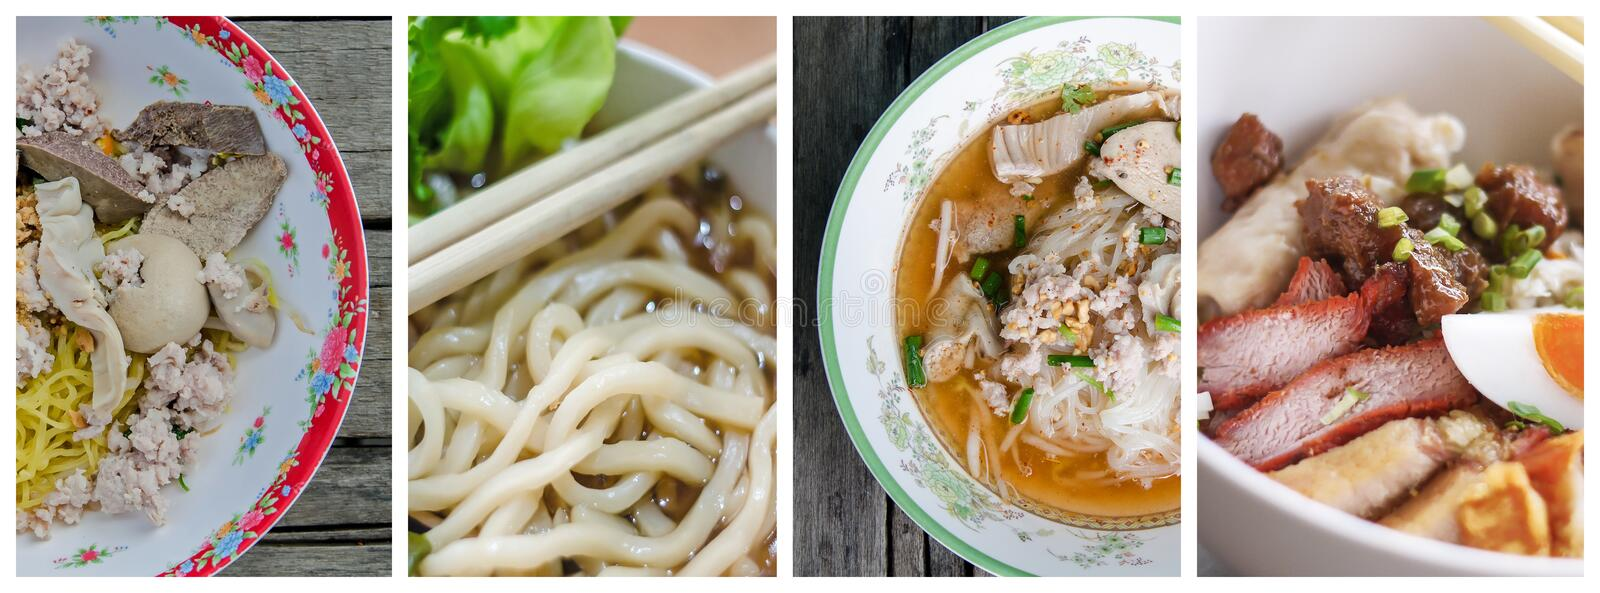 Collage photos of Noodle royalty free stock photo